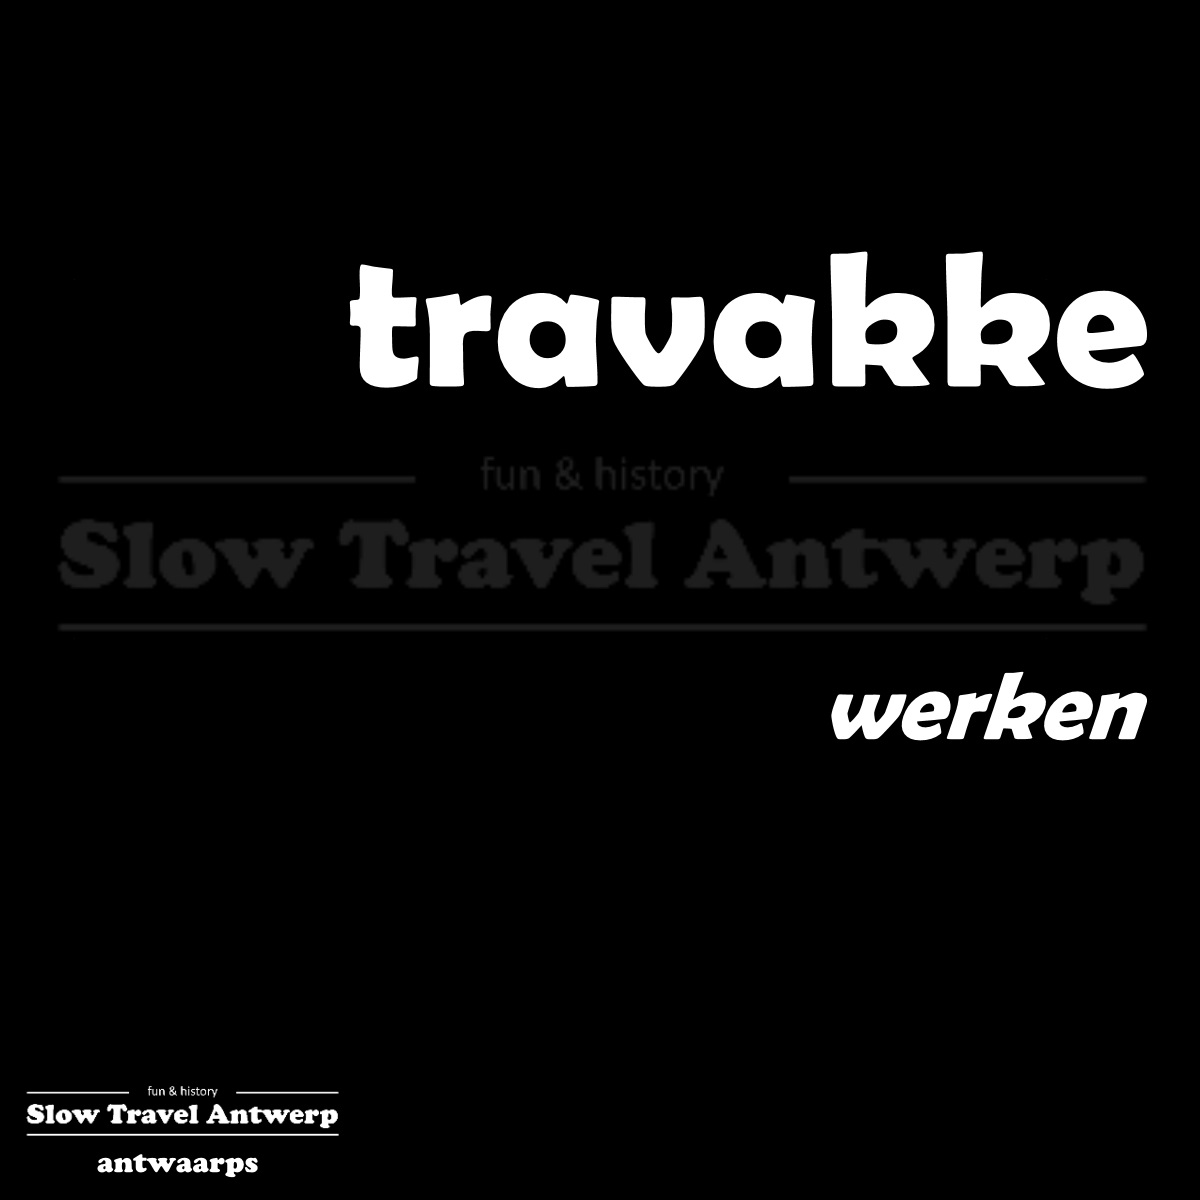 travakke – werken – to work